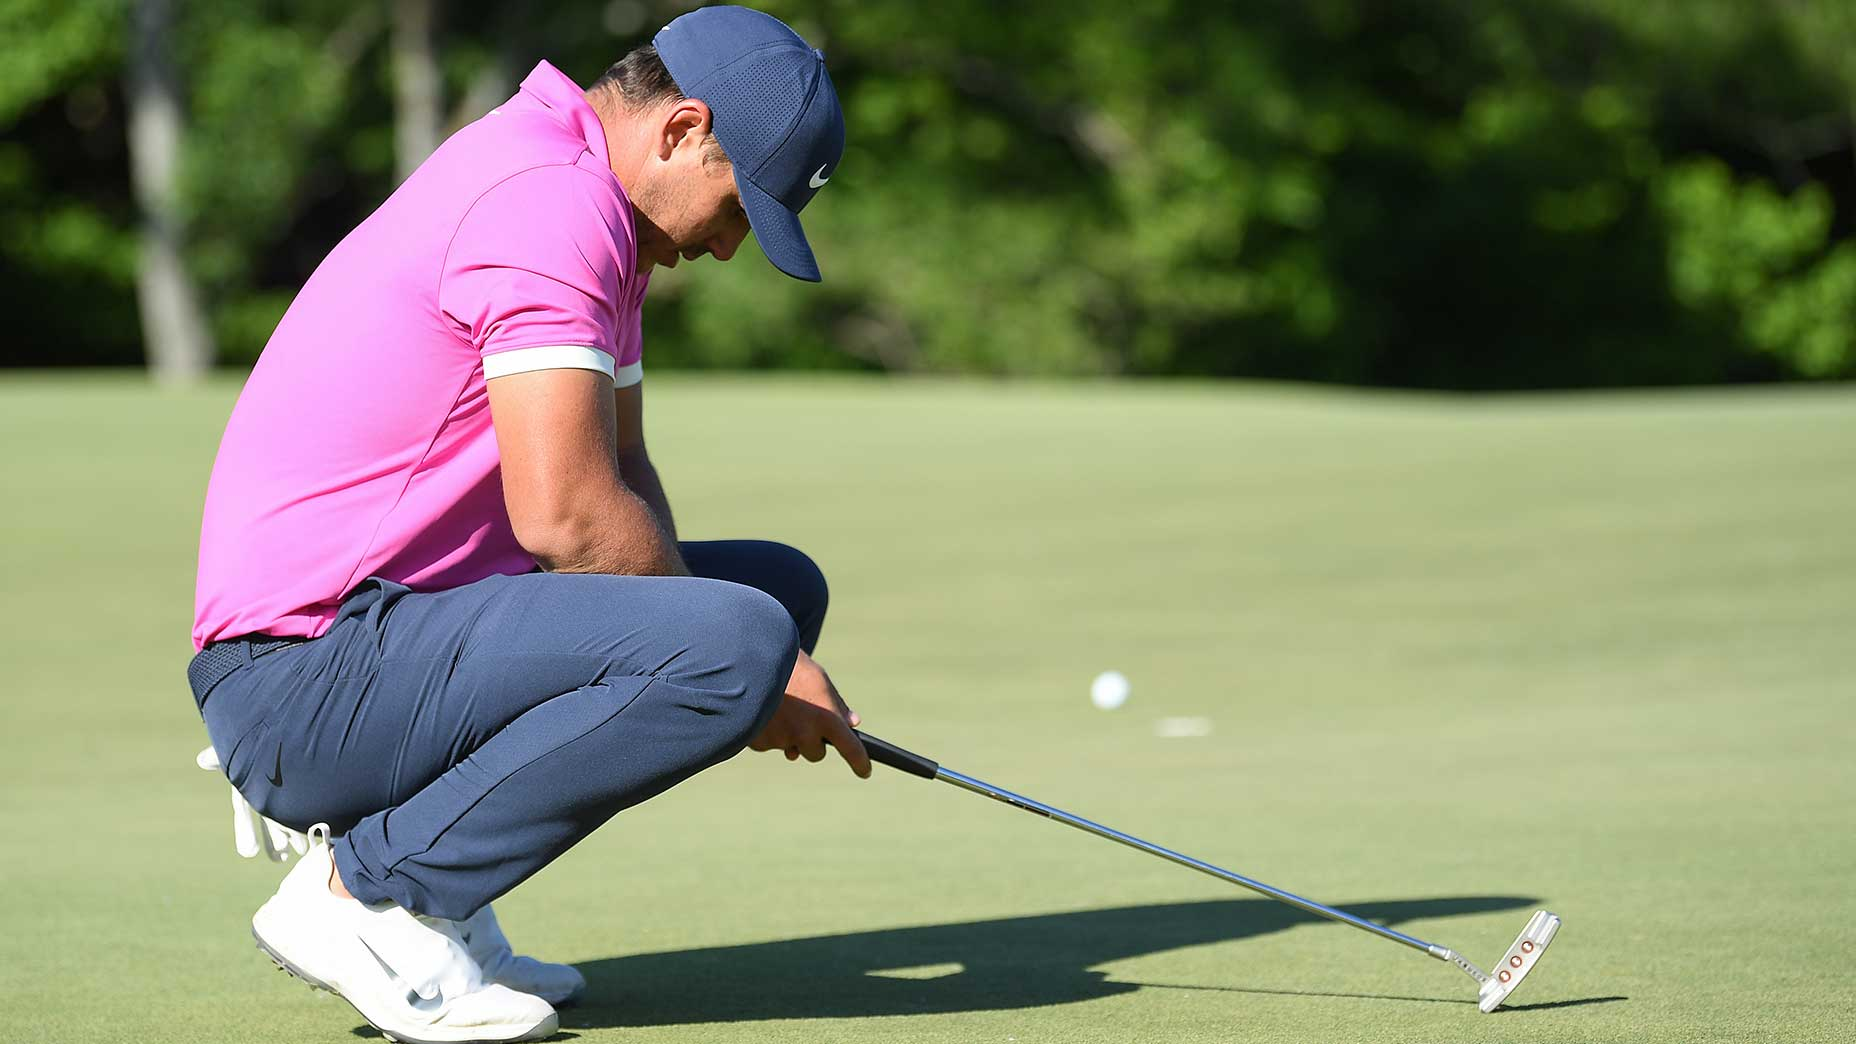 brooks koepka crouches after missing putt